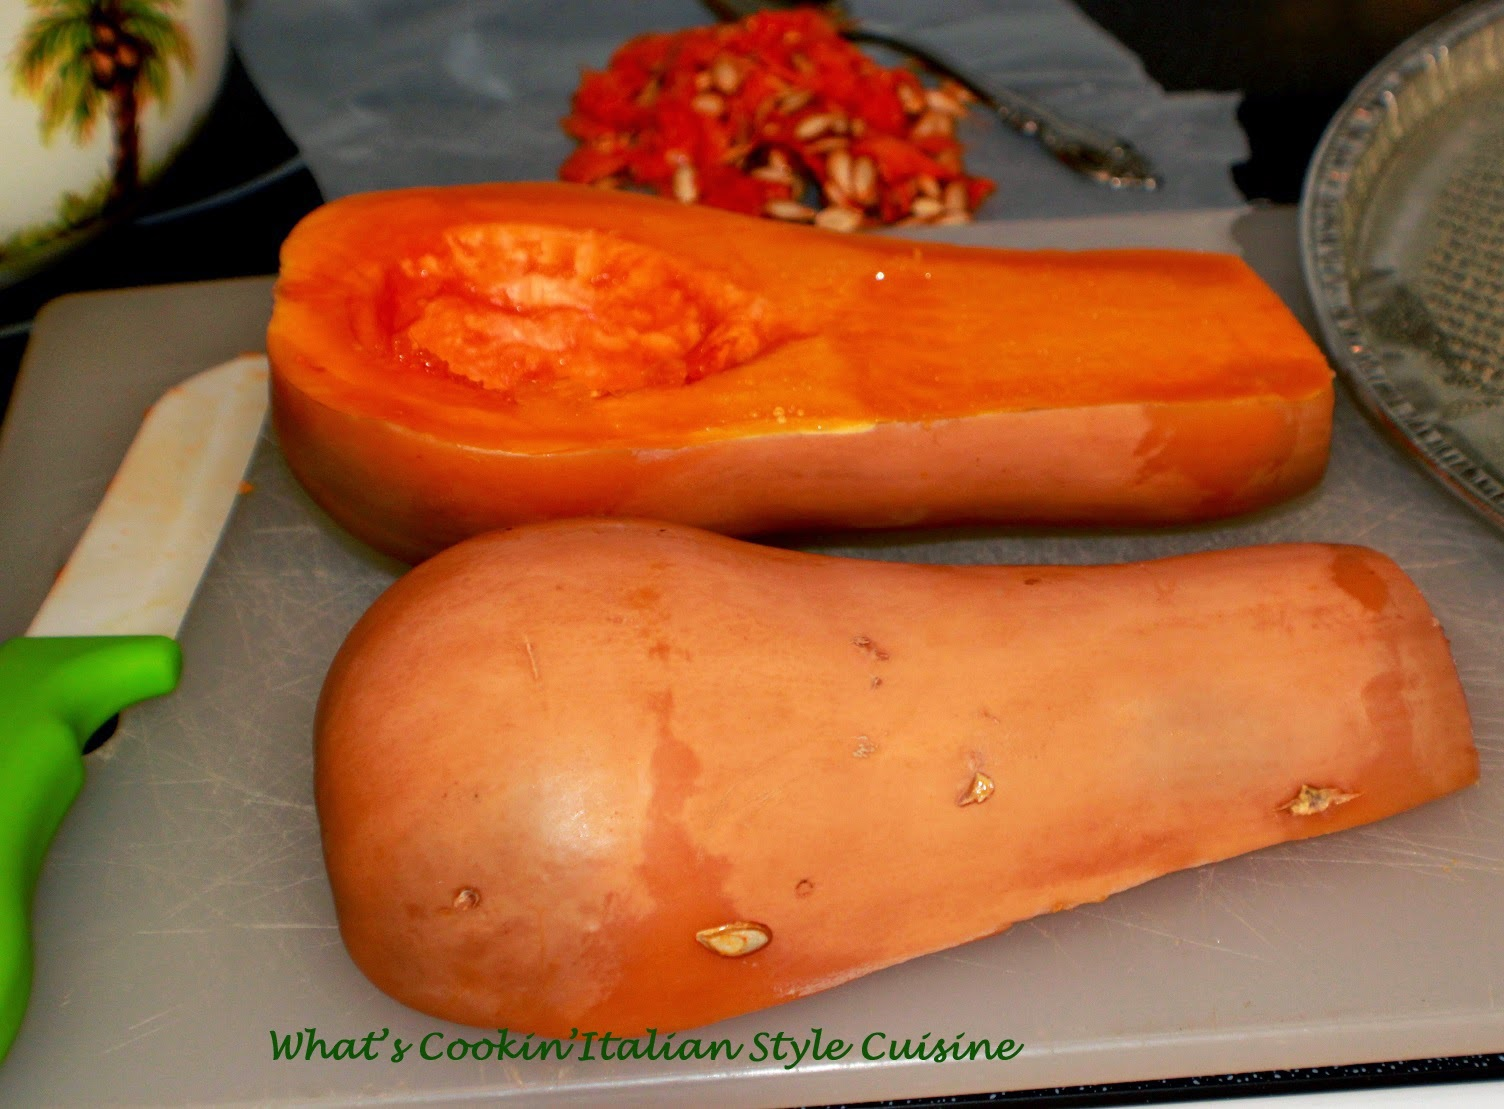 Cutting and Roasting Butternut Squash Tips